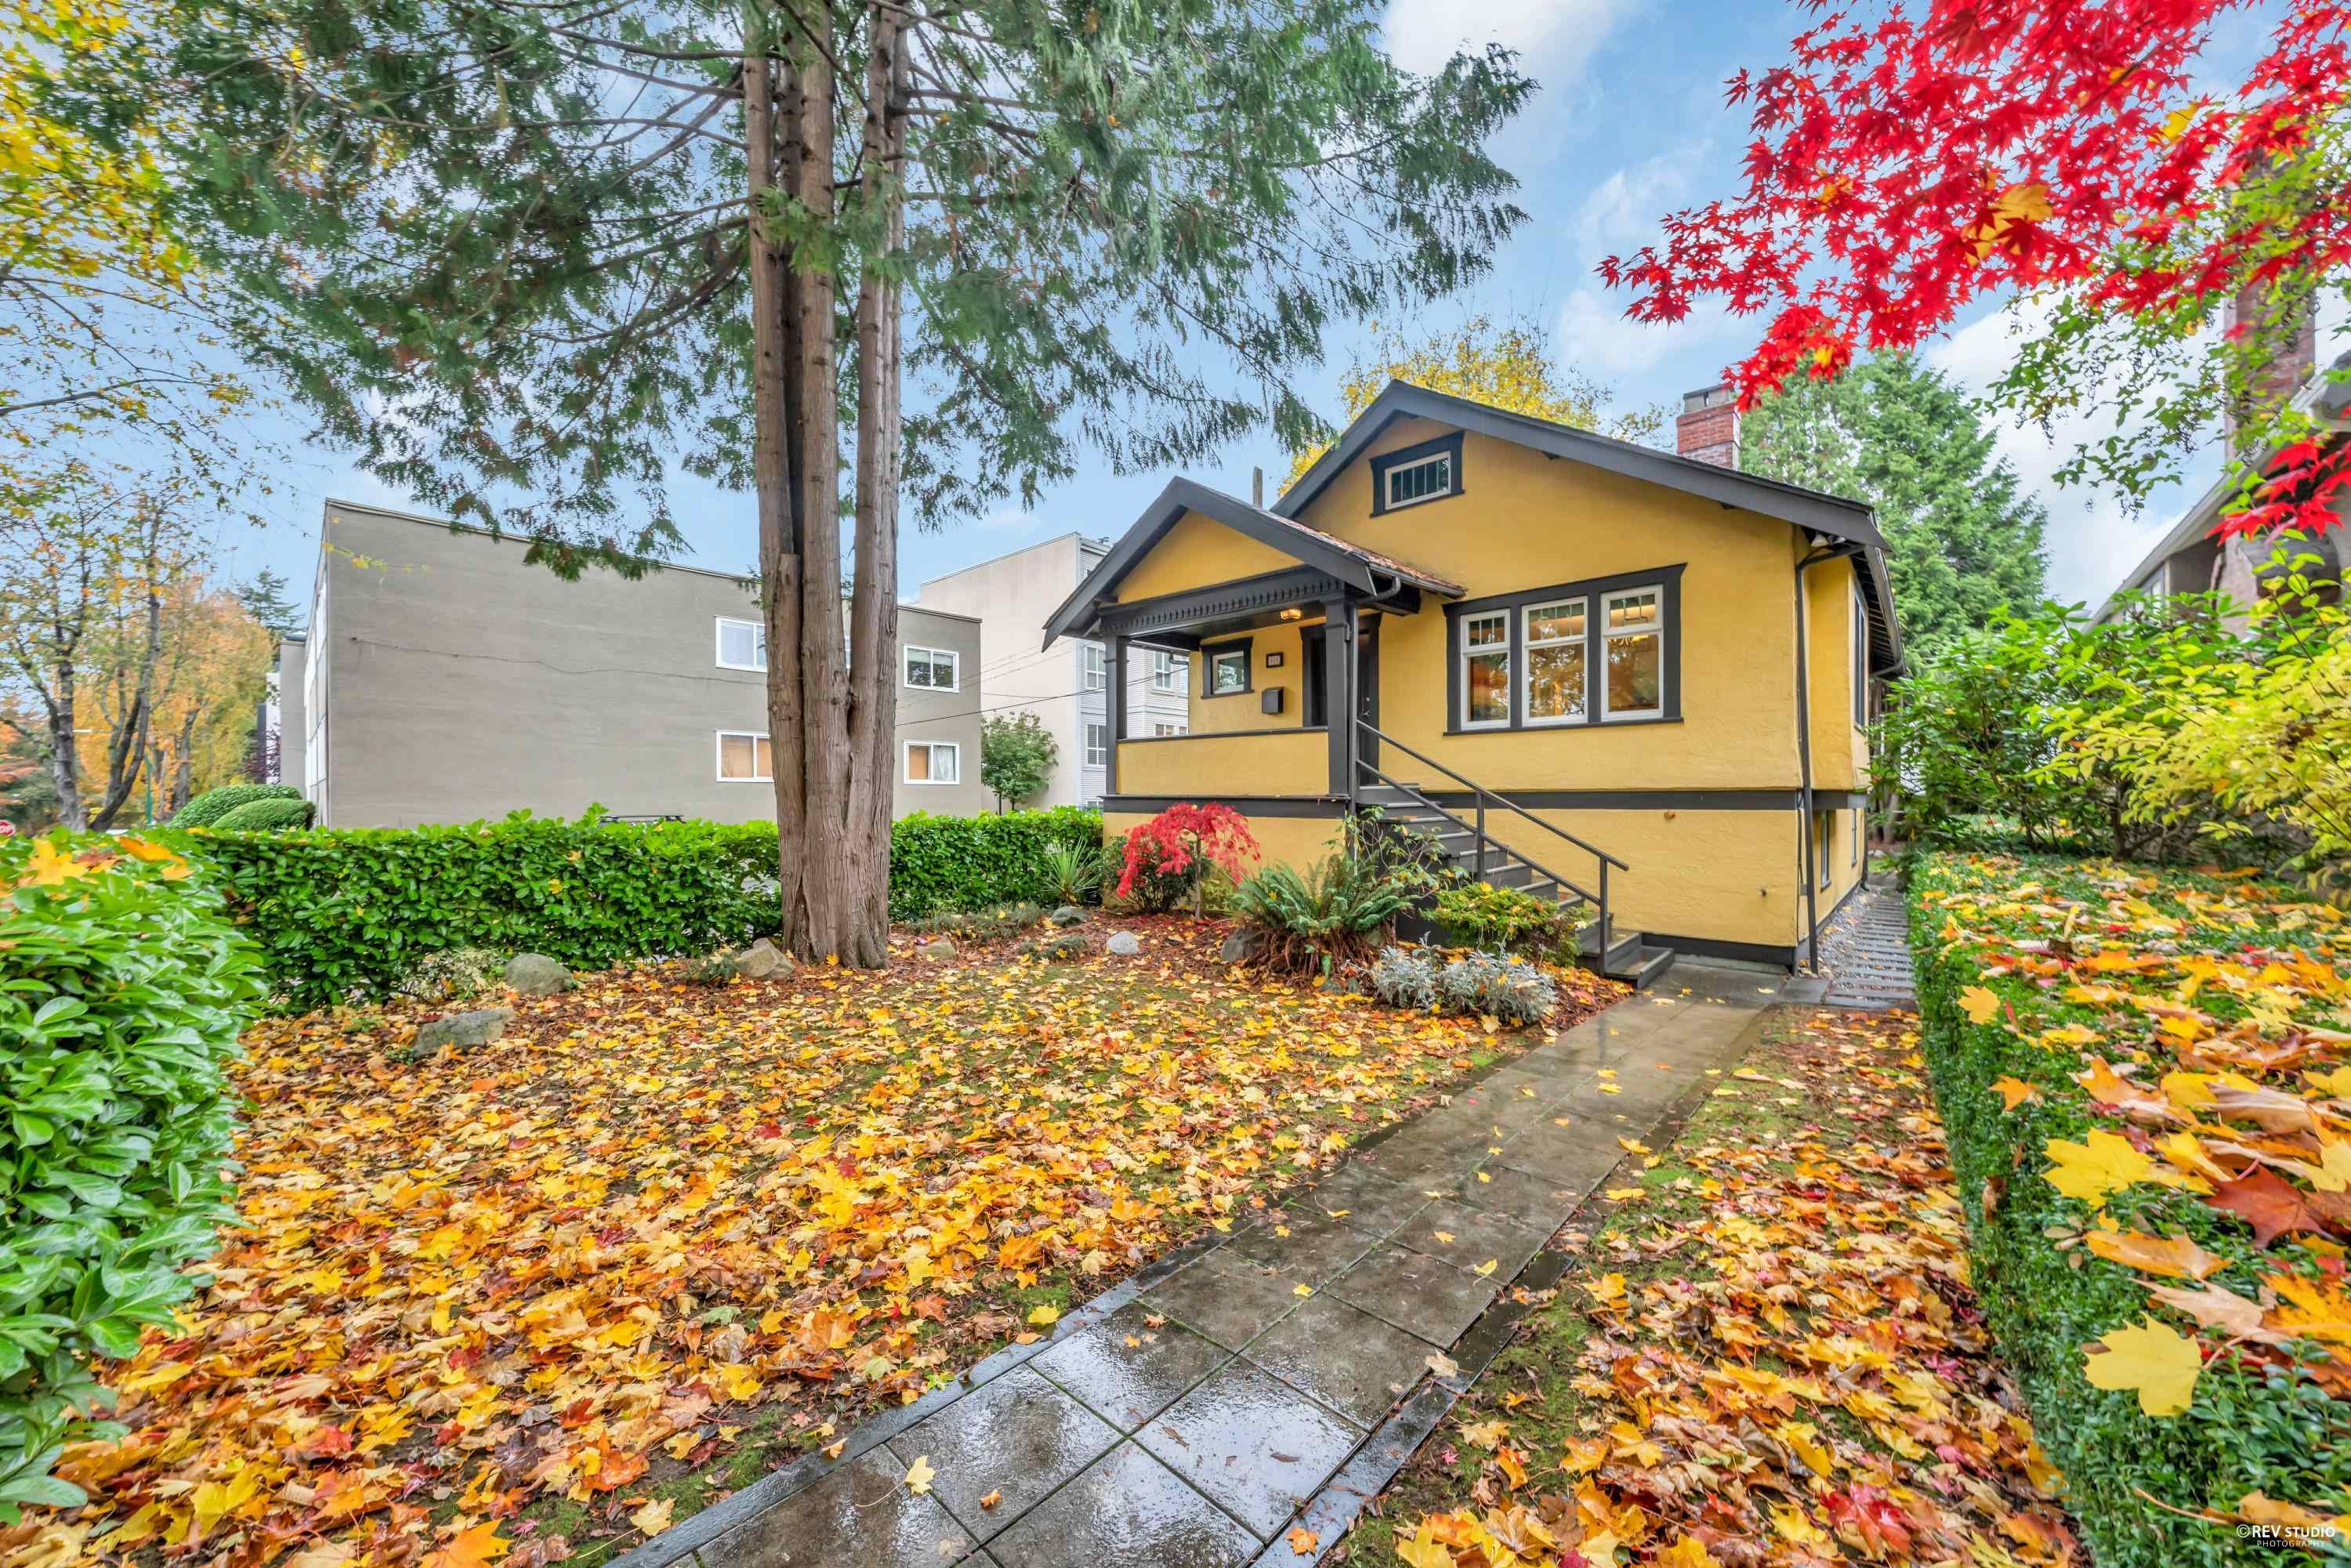 681 W 17TH AVENUE - Cambie House/Single Family for sale, 4 Bedrooms (R2629089) - #1